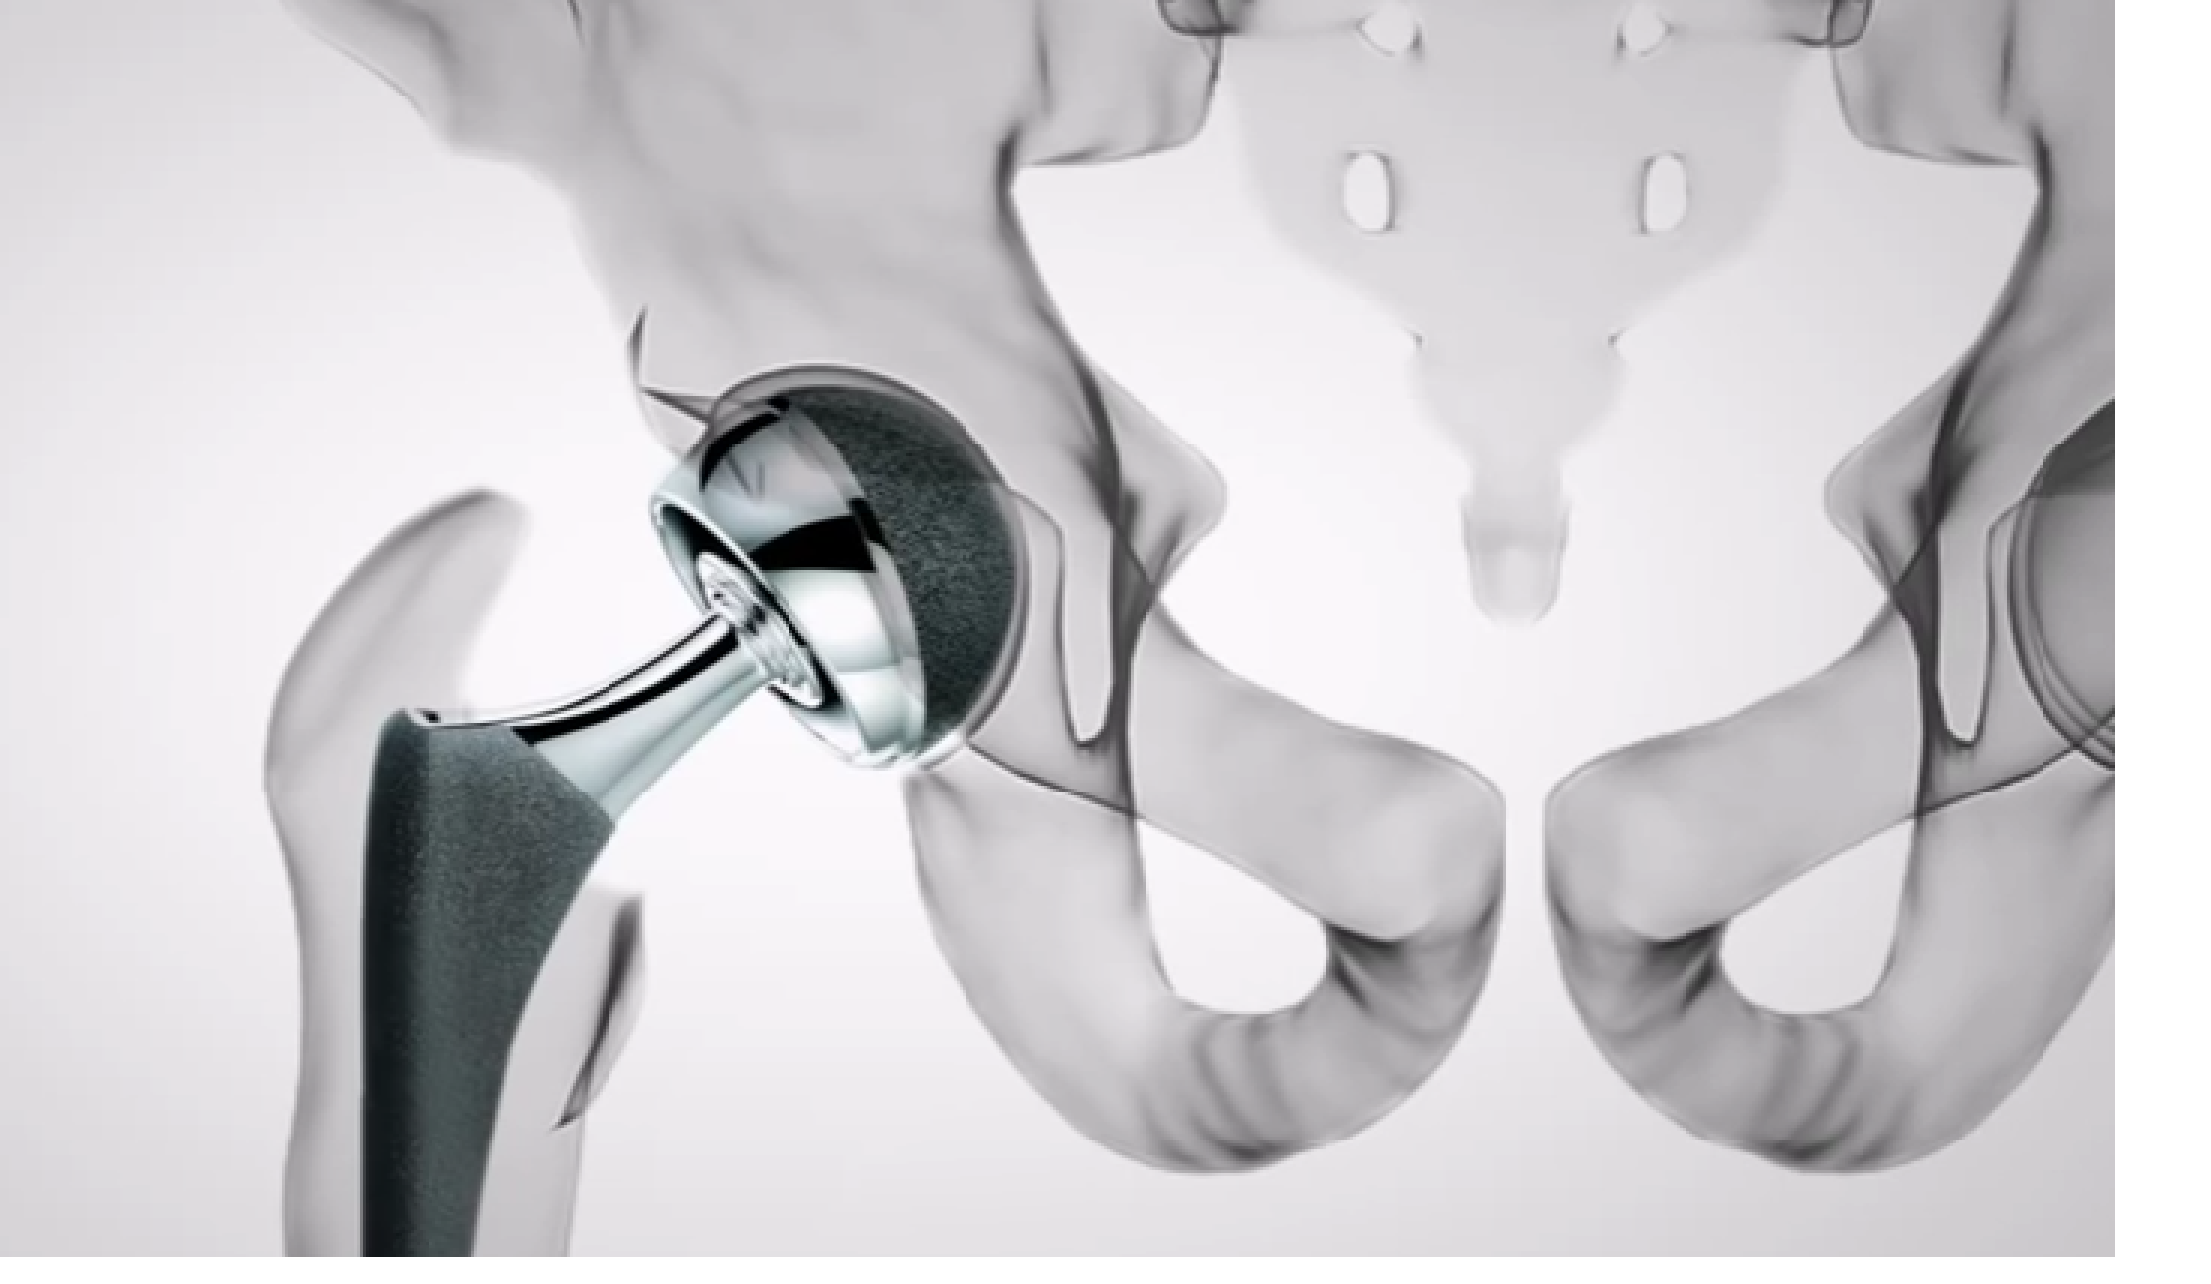 Stryker Hip Device Failure with Patient Complaints on the Rise